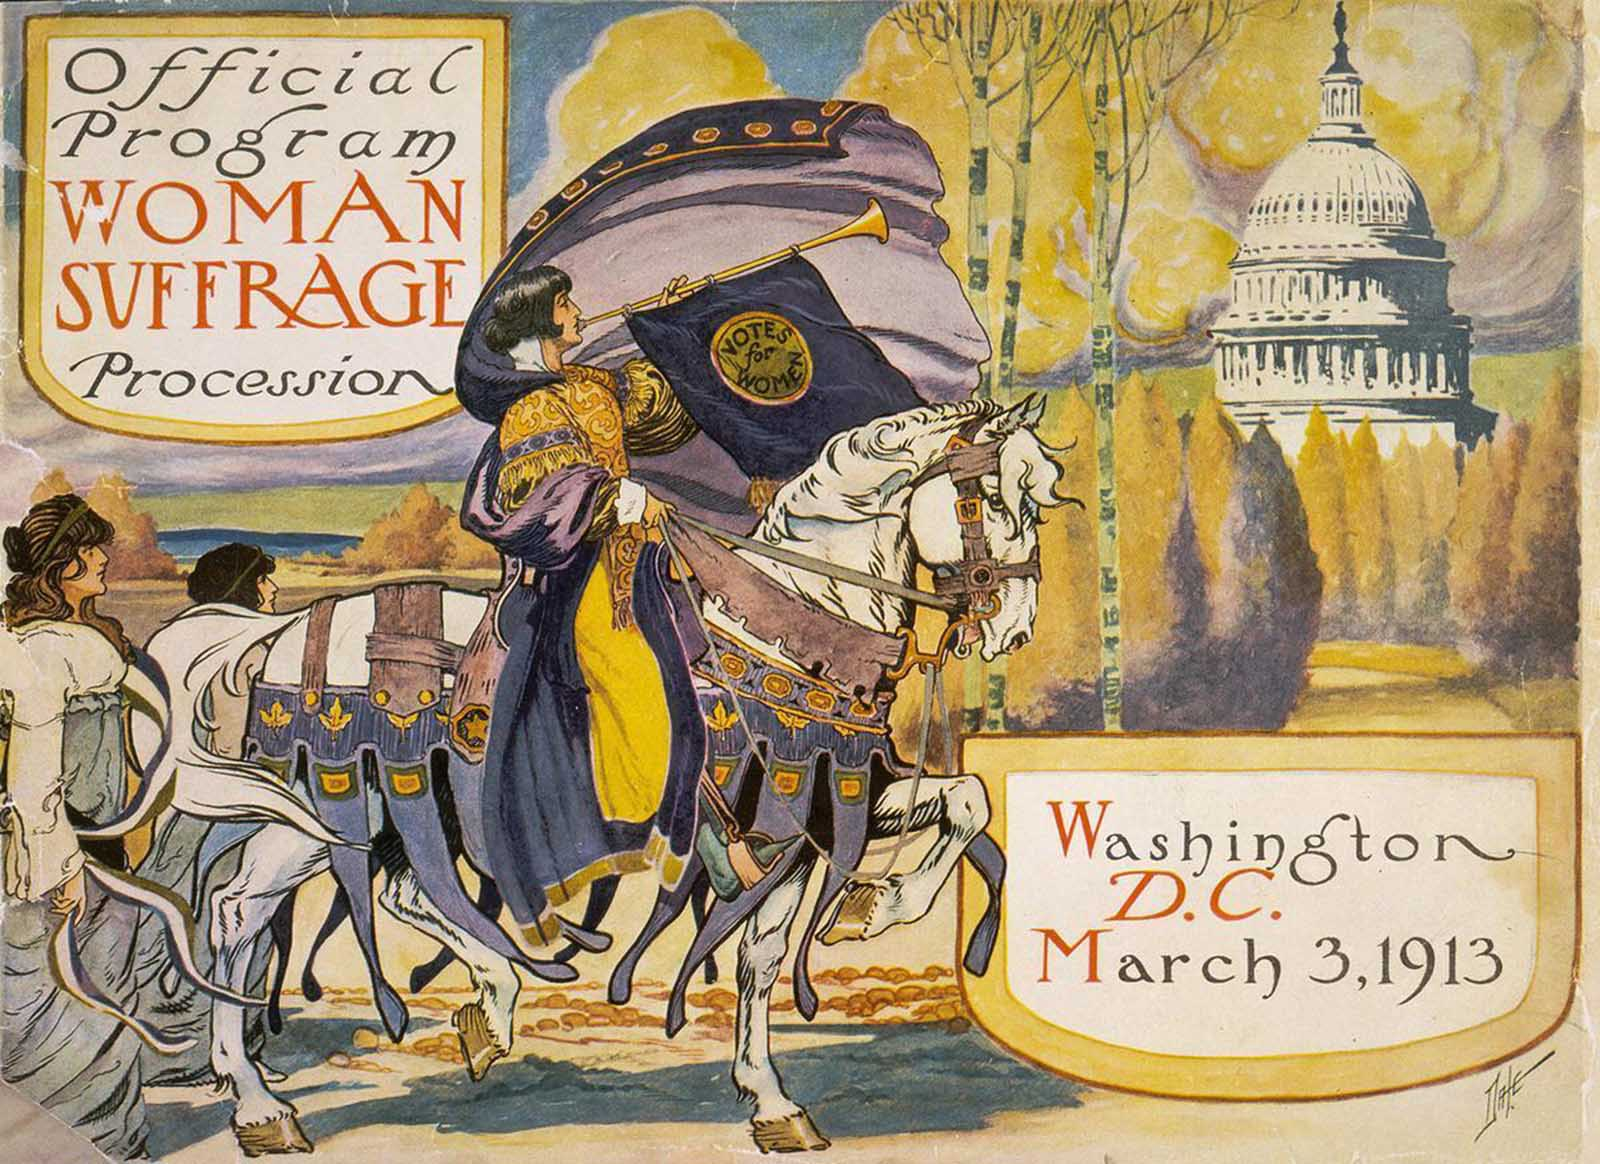 Cover of the program for the 1913 women's suffrage procession.